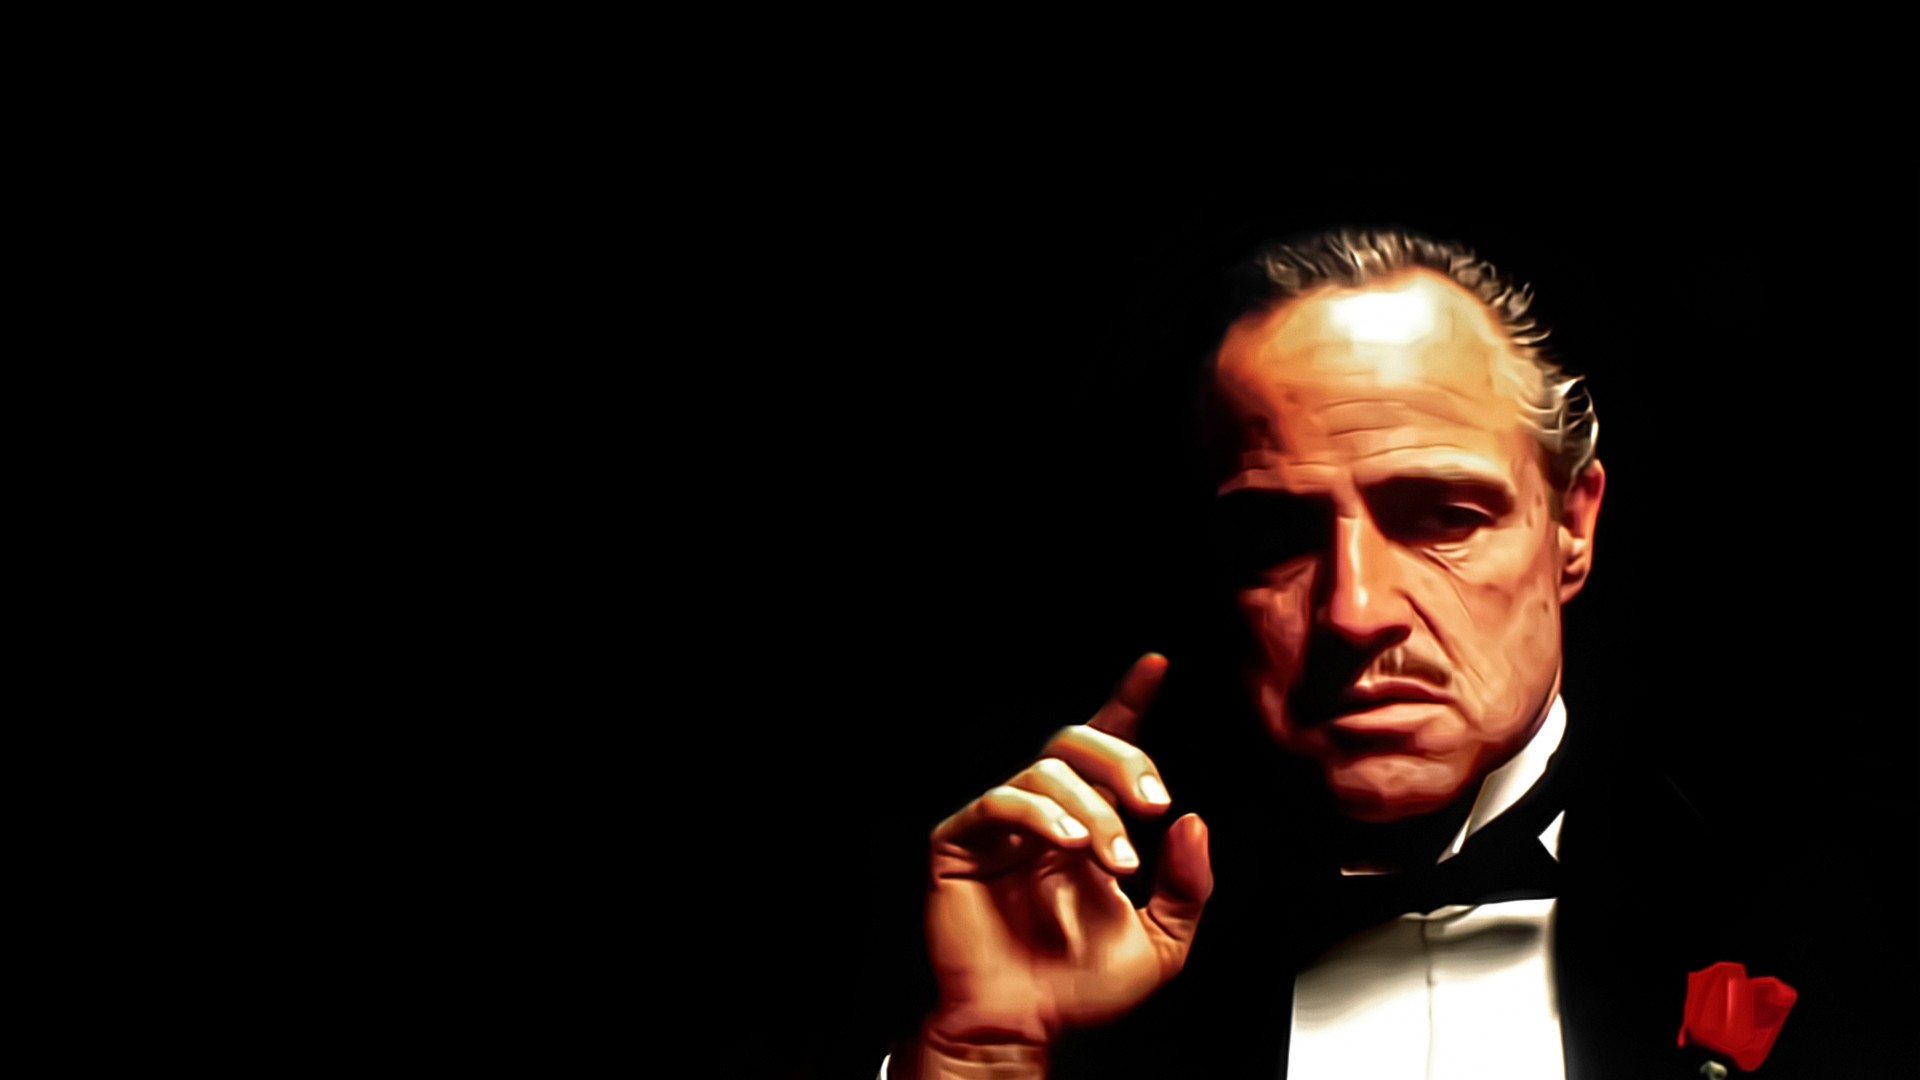 Don Vito Corleone Godfather pictures and wallpaper for desktop 1920x1080